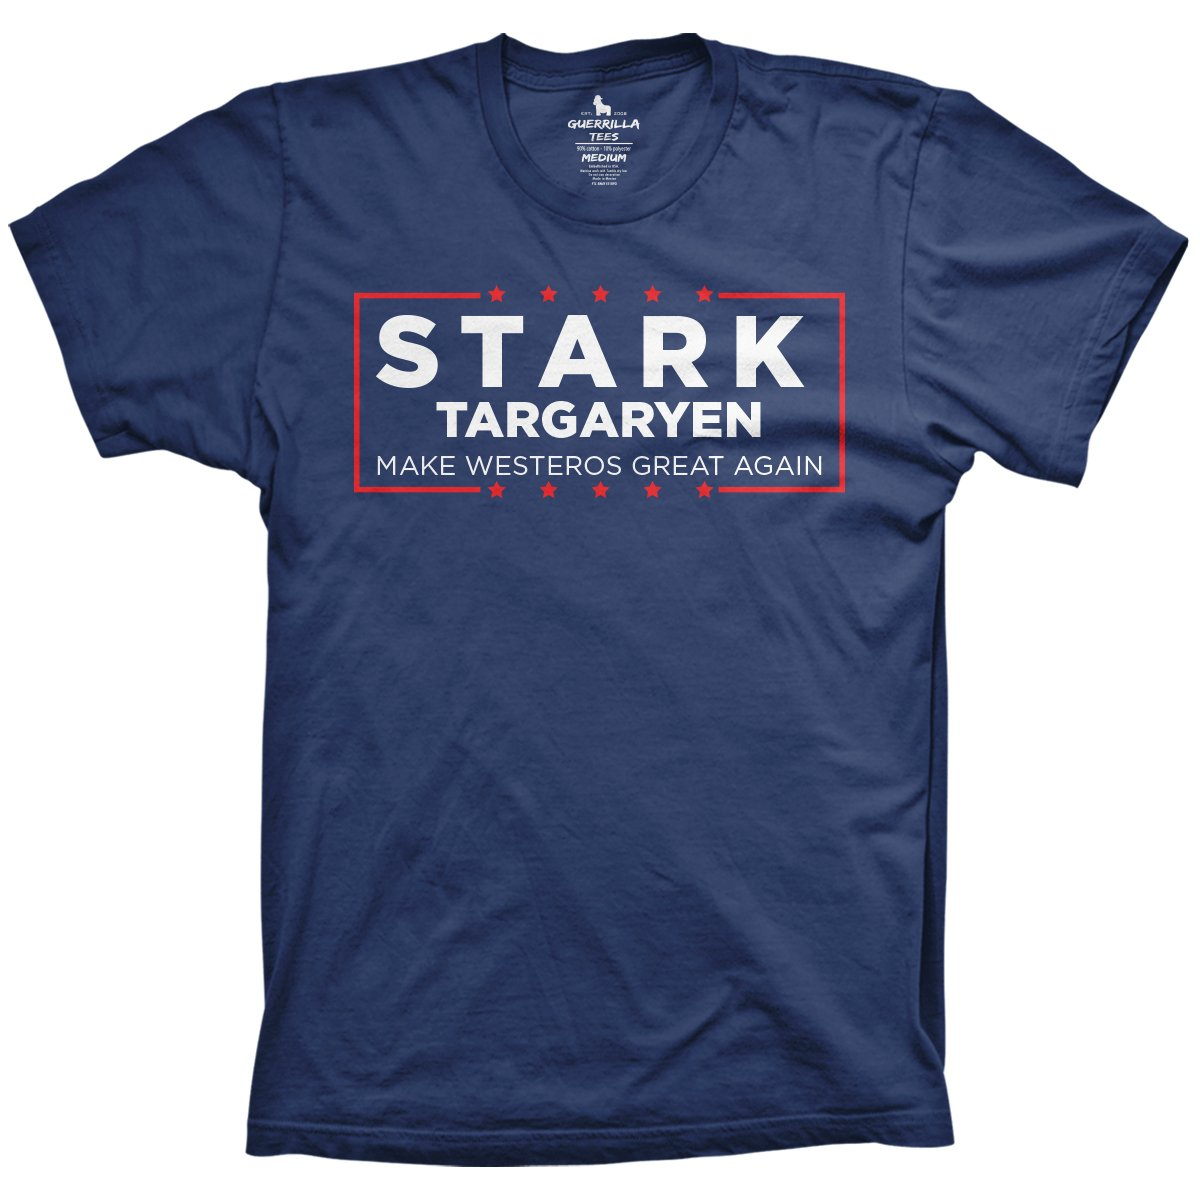 4100818b34 Funny Game of Thrones Shirt | Stark Targaryen | Guerrilla Tees